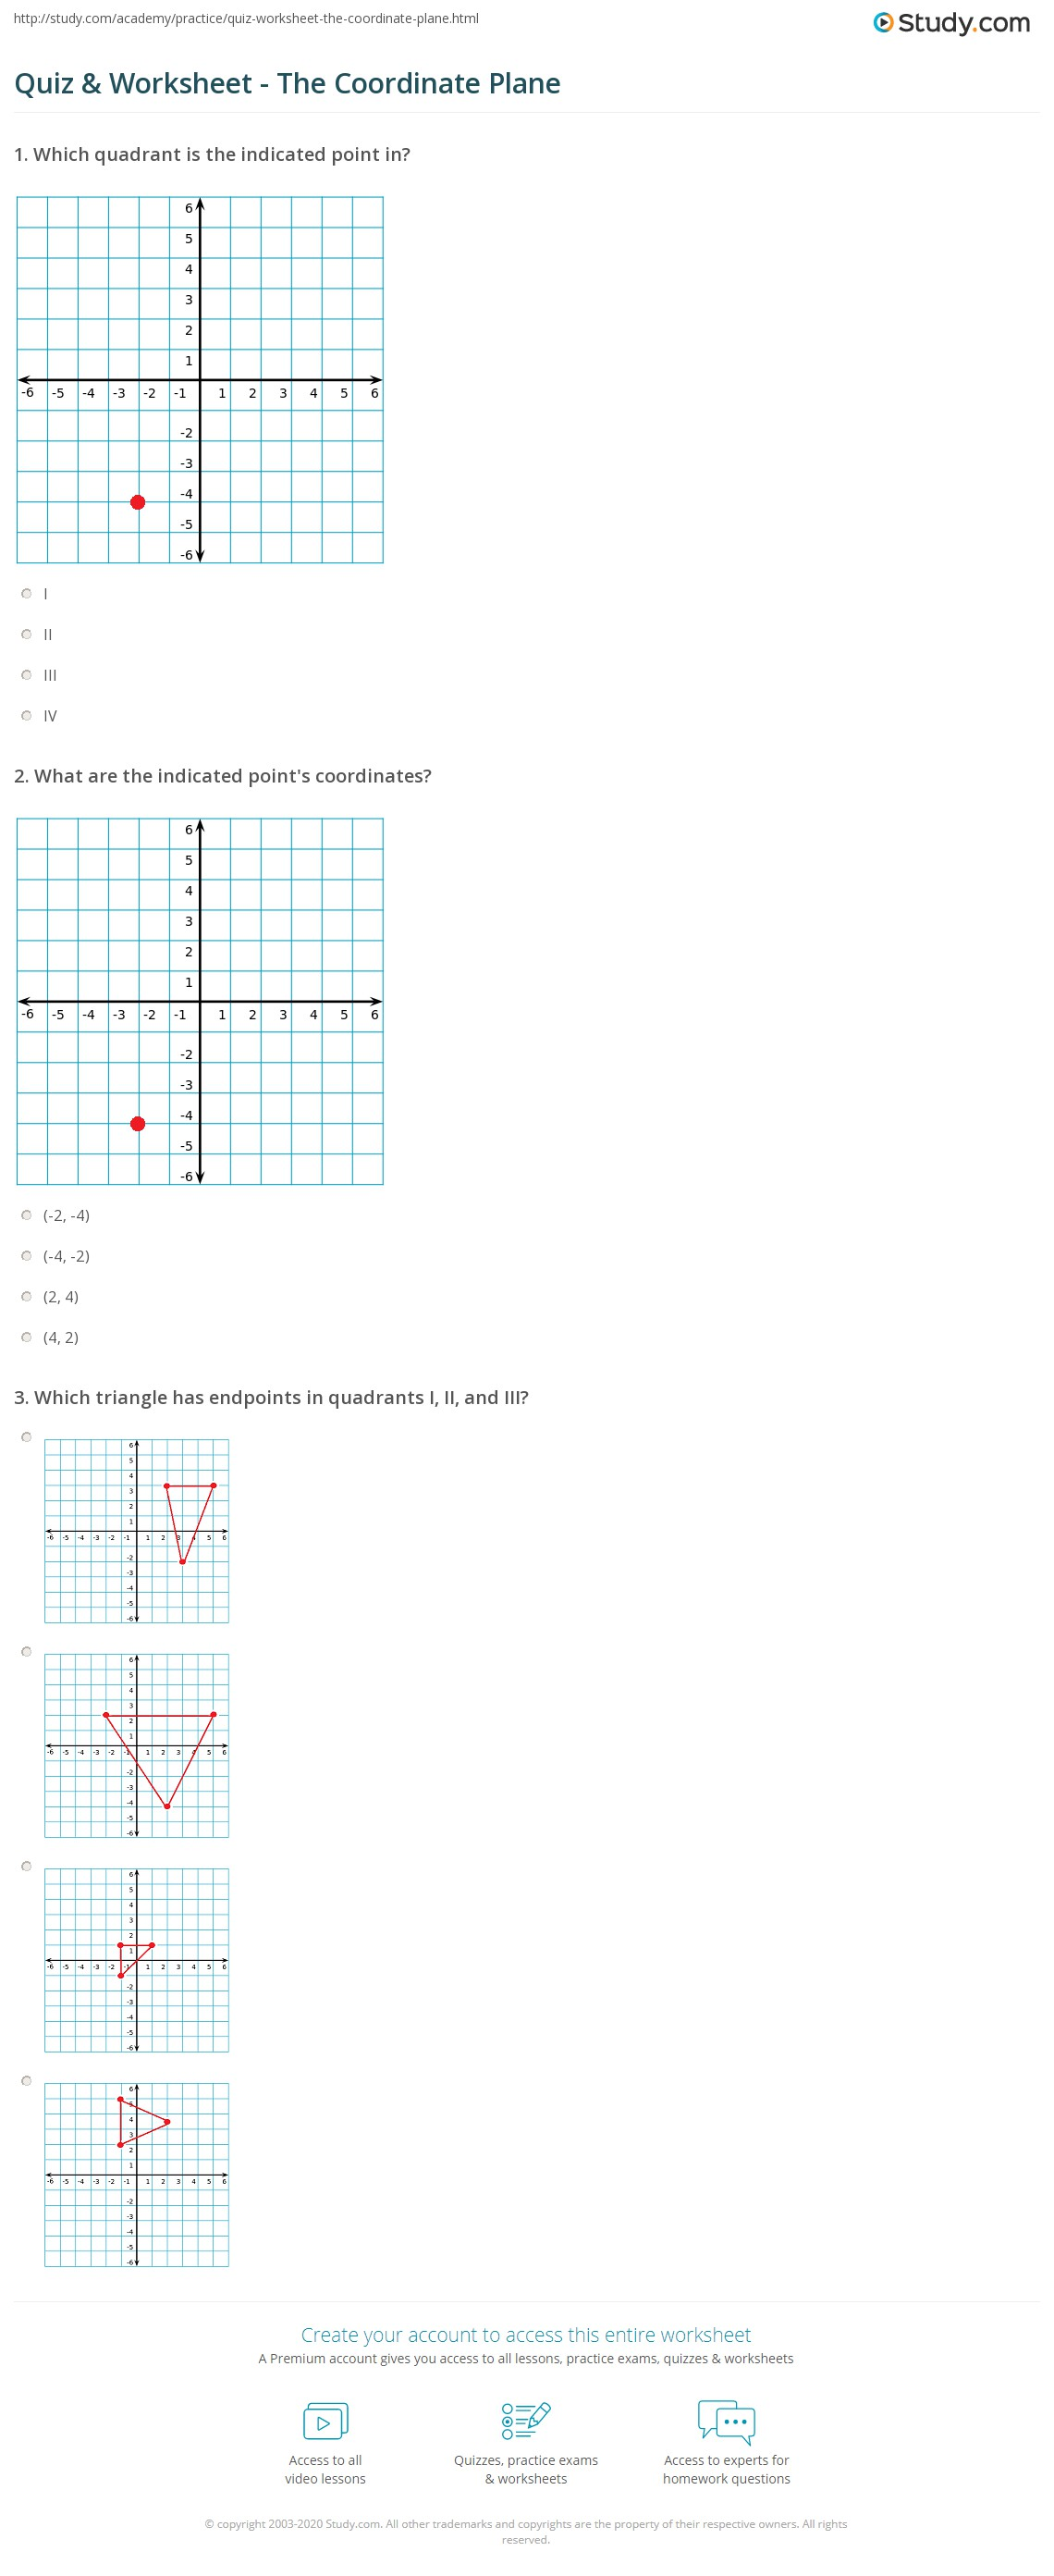 Quiz Worksheet The Coordinate Plane Study Com